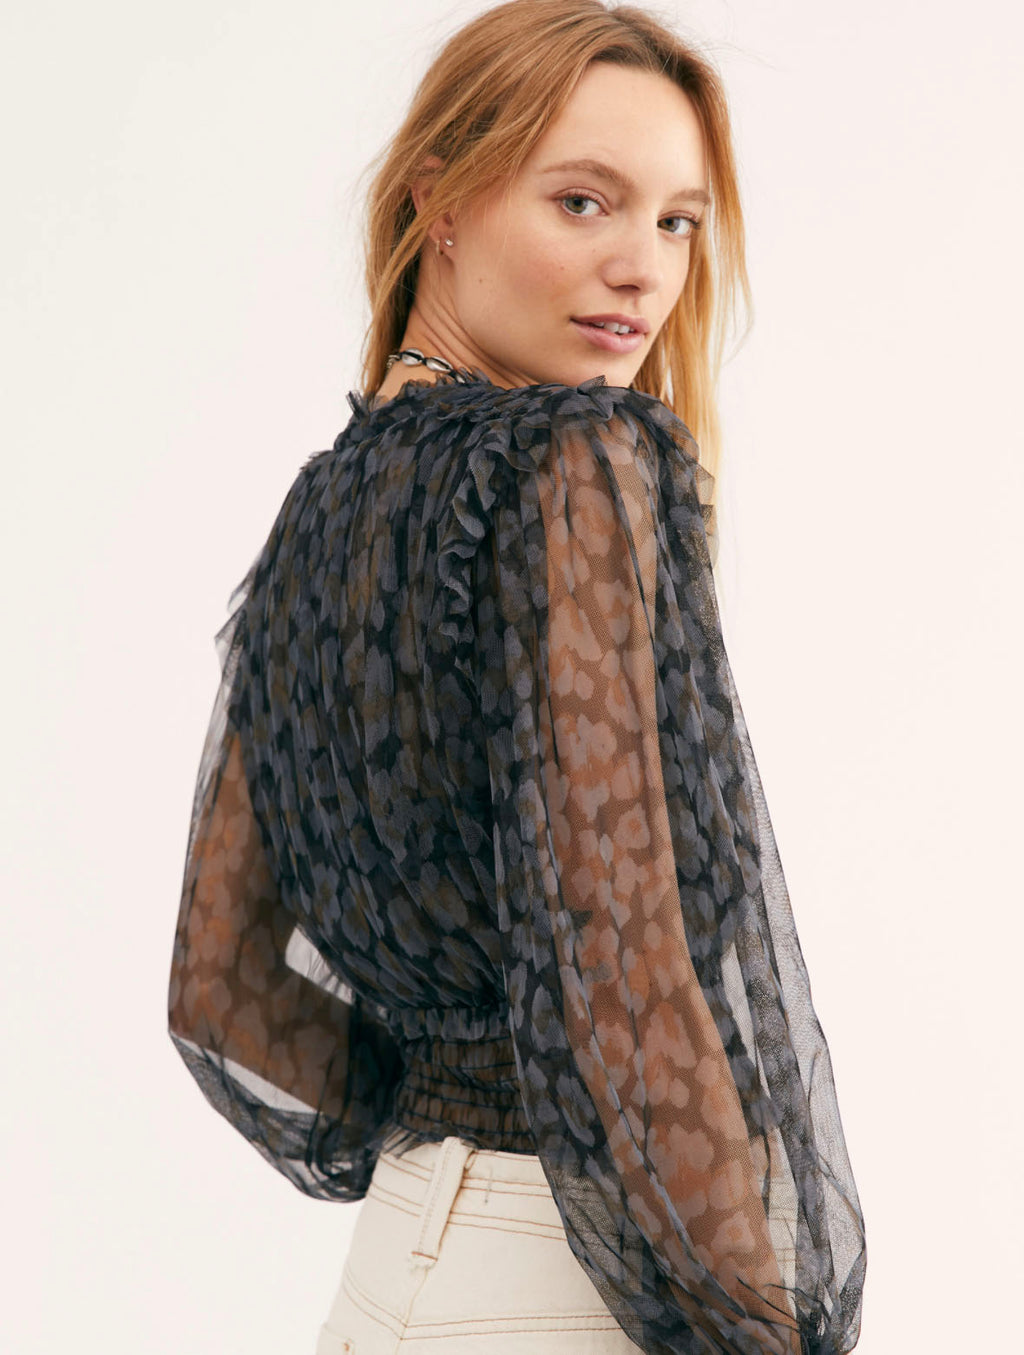 Free People Printed Twyla Top in Black Combo Leopard